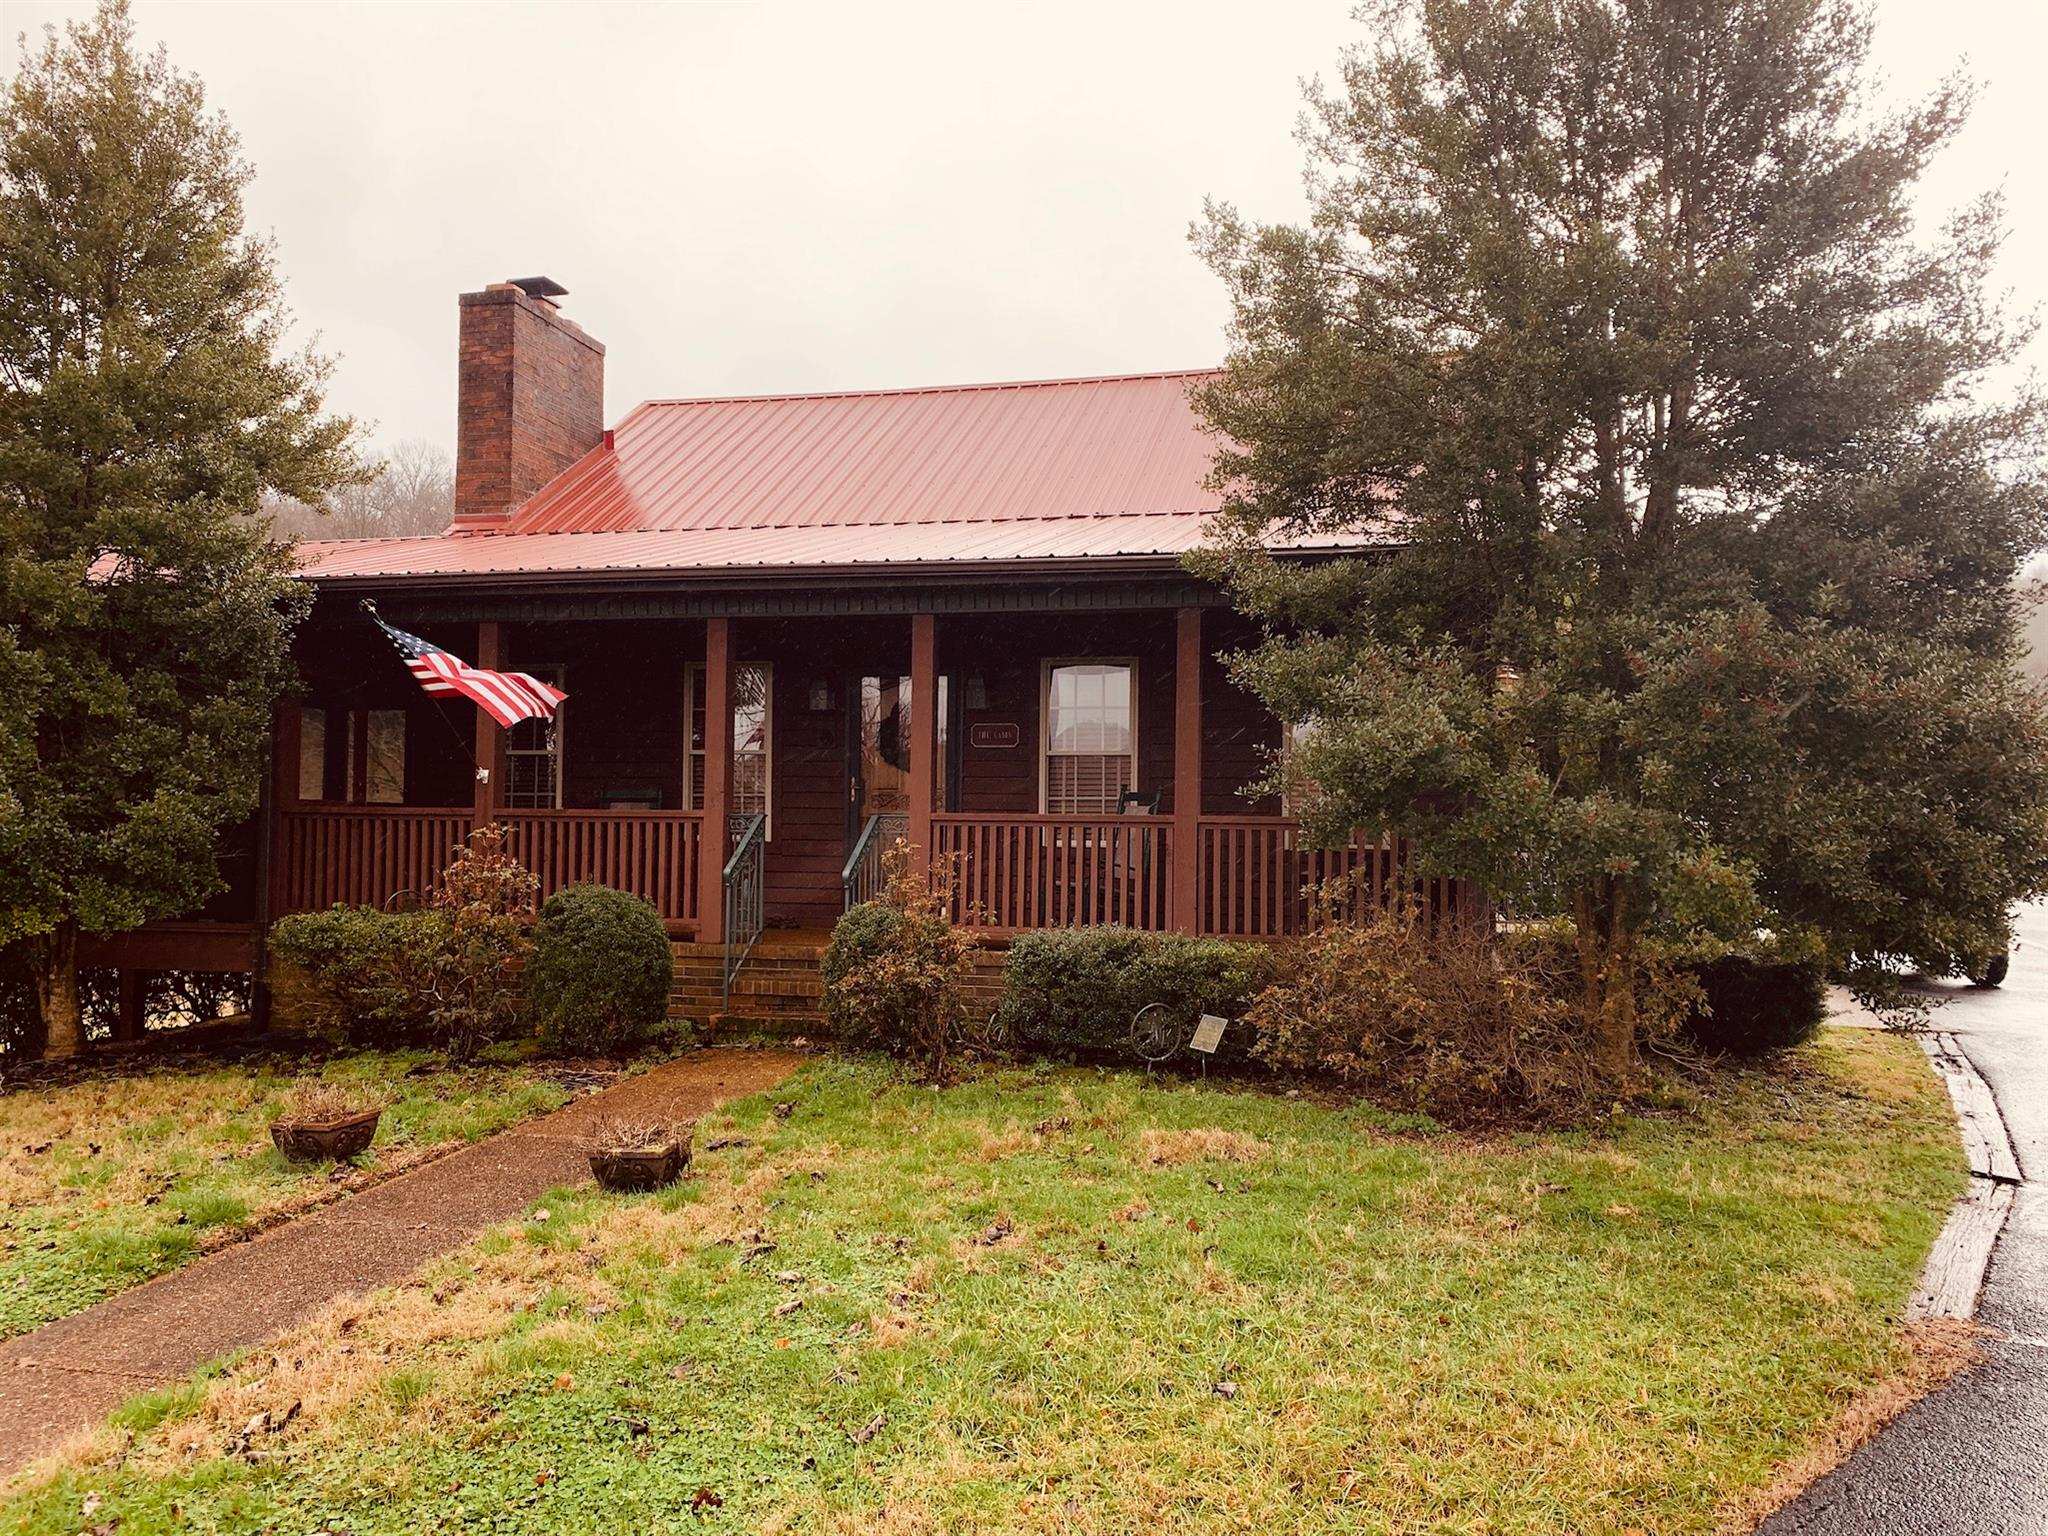 403 Blue Stocking Hllw Rd, Shelbyville, TN 37160 - Shelbyville, TN real estate listing